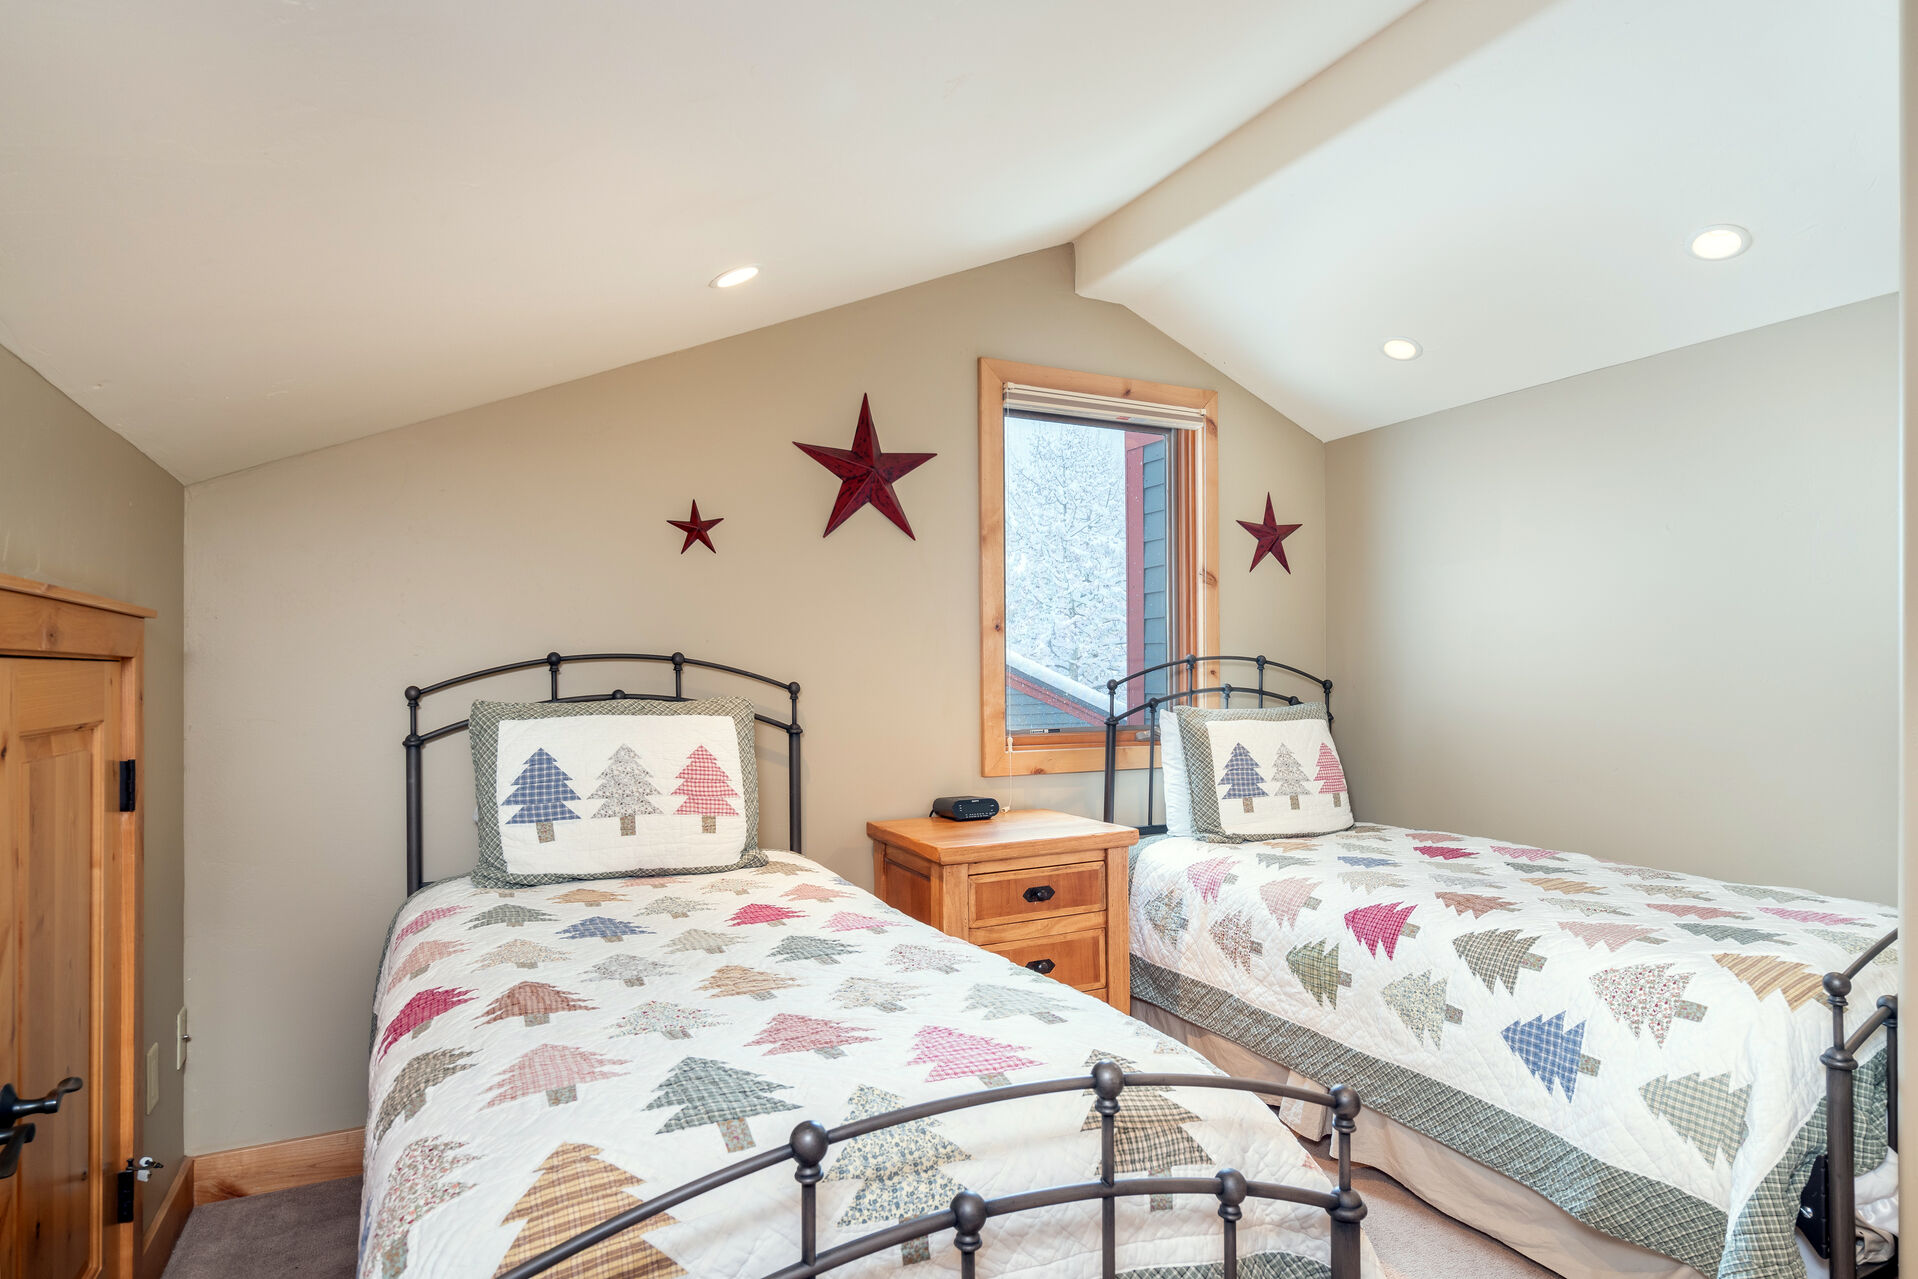 Twin beds with a nightstand in between in the second bathroom.